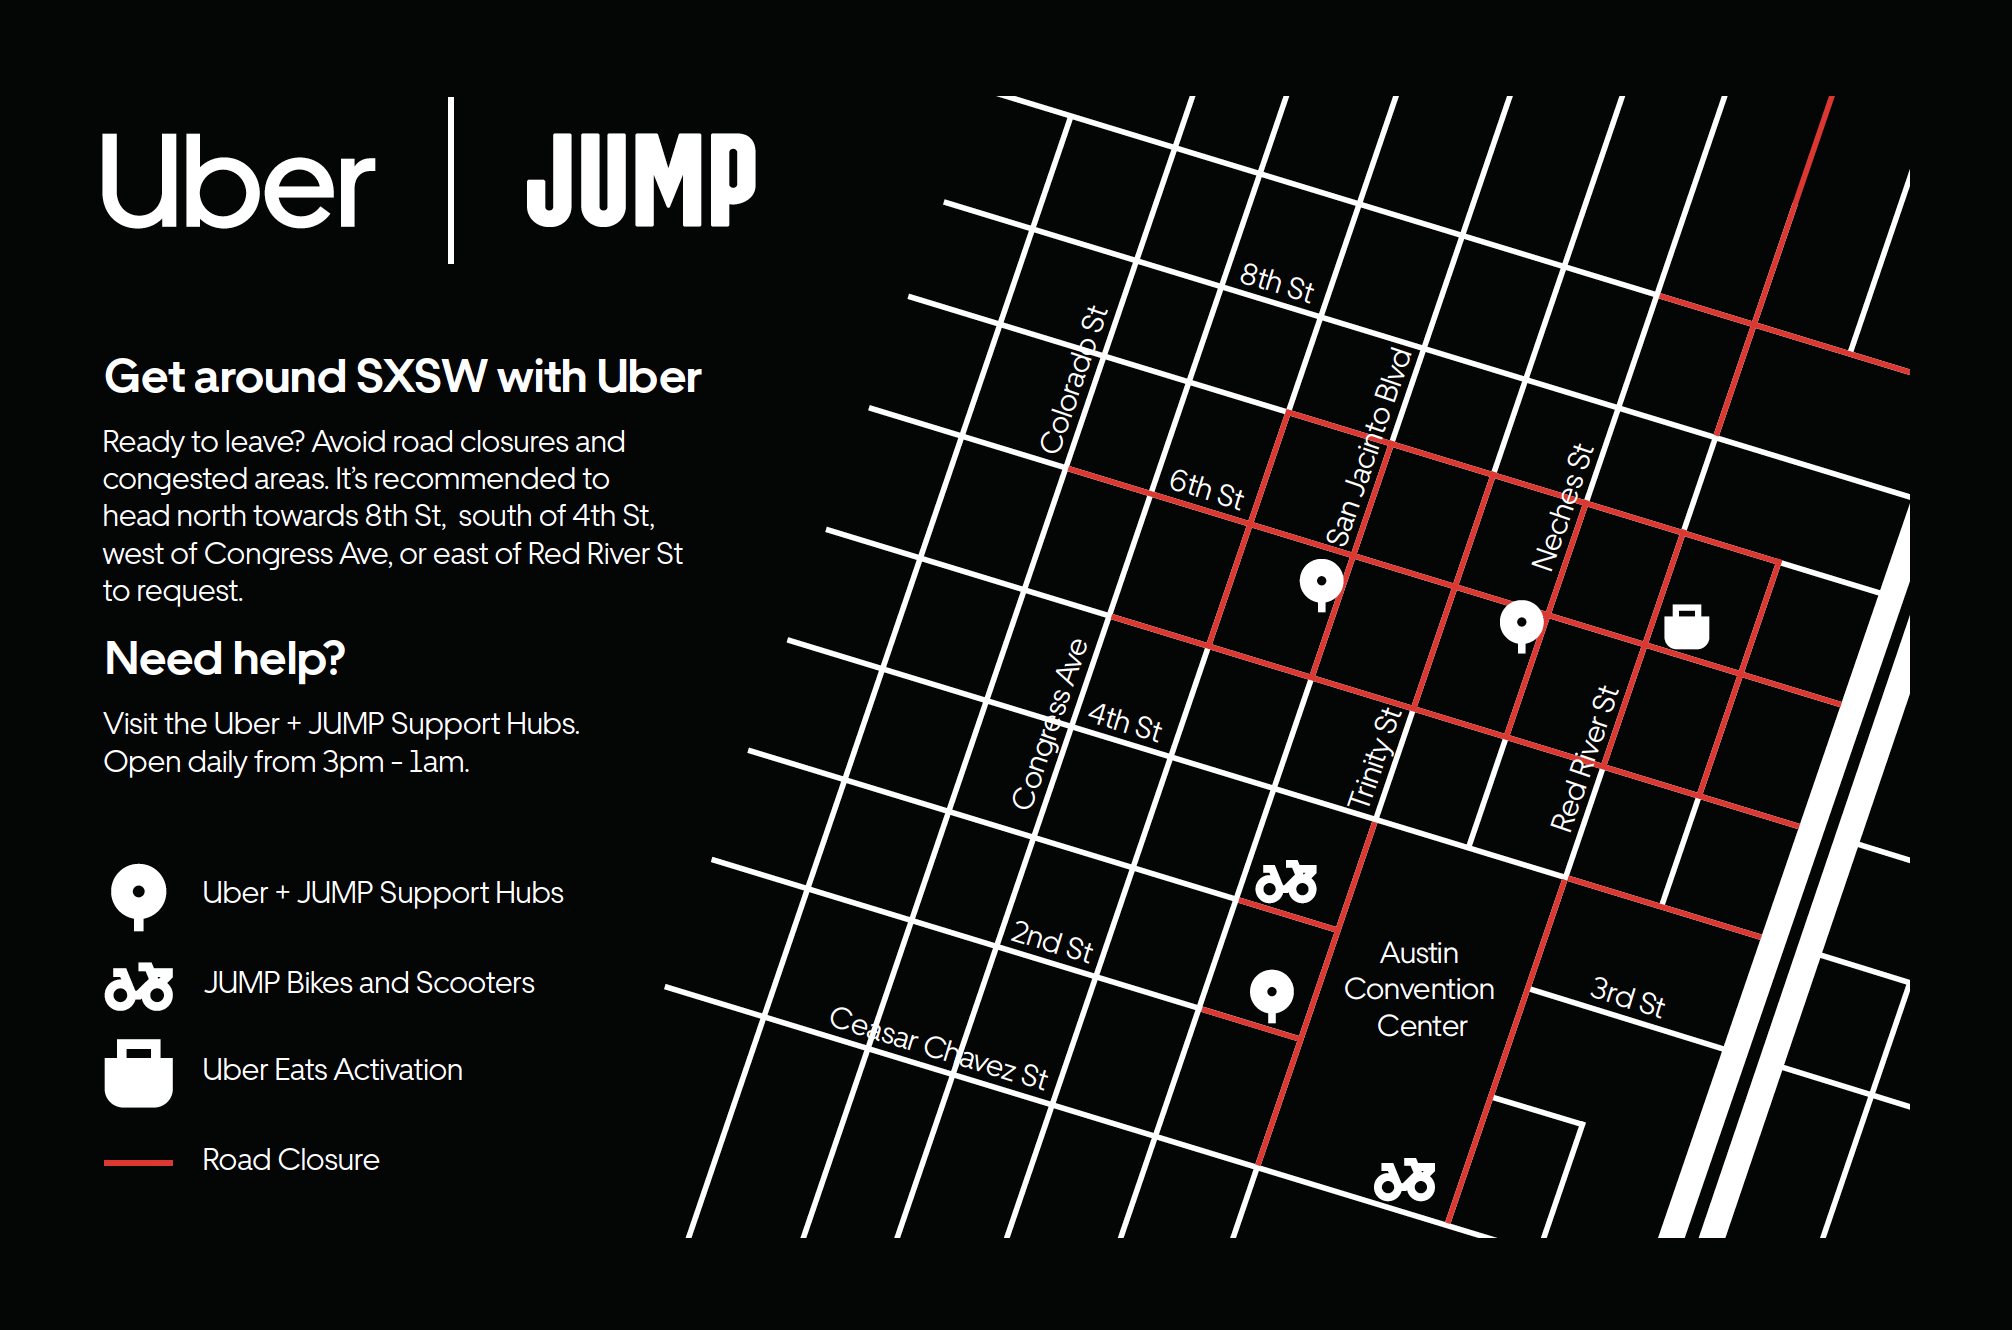 Uber map for SXSW